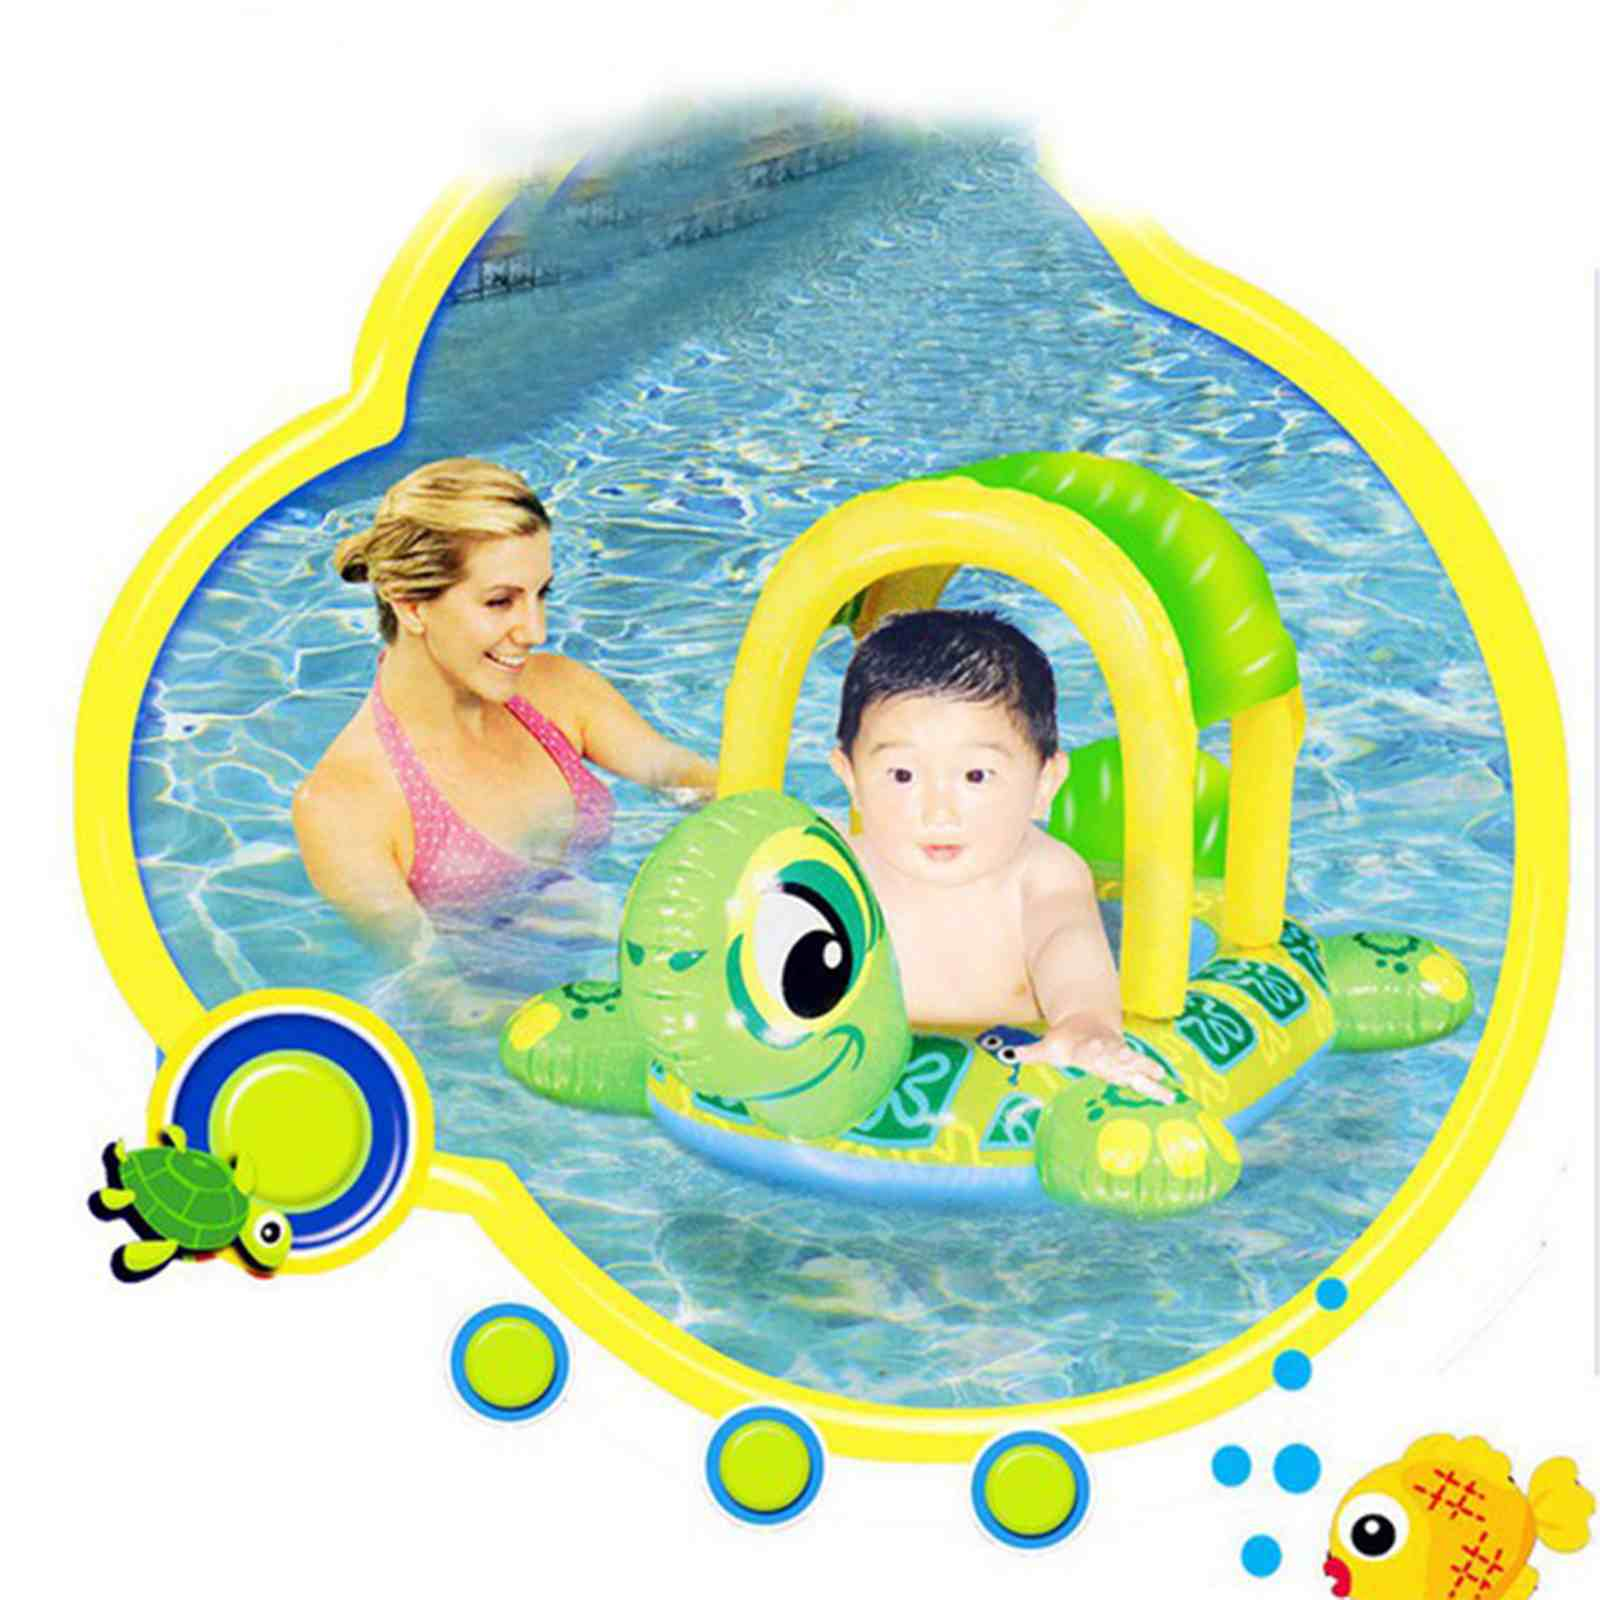 New Safety Inflatable Belt Water Pool Fun Sun Protection Umbrella Adjustable Sunshade Baby Swim Ring Float Seat Boat